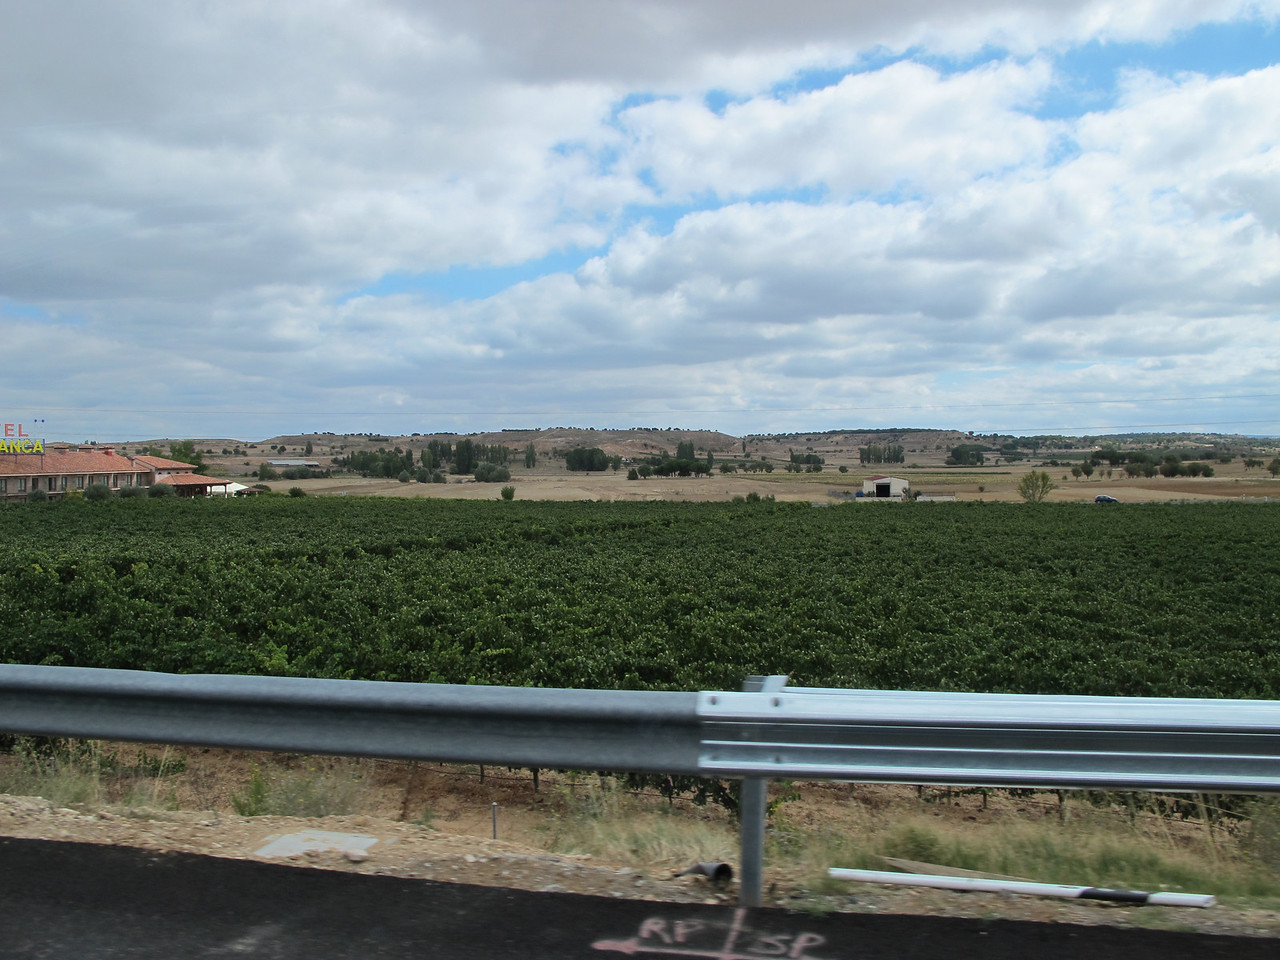 Once you're about 60-90 minutes out of Madrid, you start to see vineyards along the roadways.